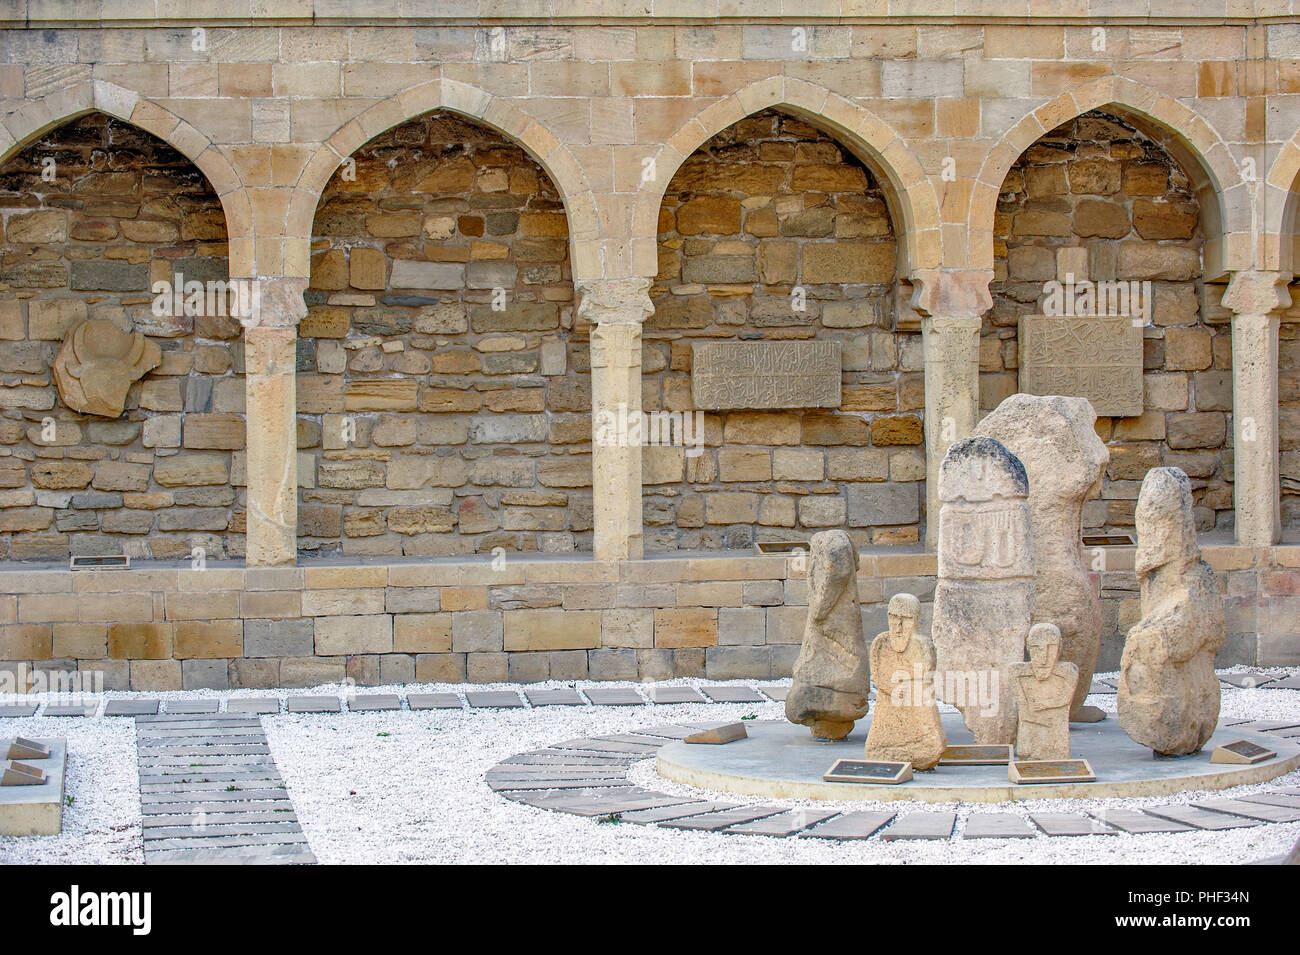 Archaeological exposition in old city, Baku, Azerbaijan - Stock Image